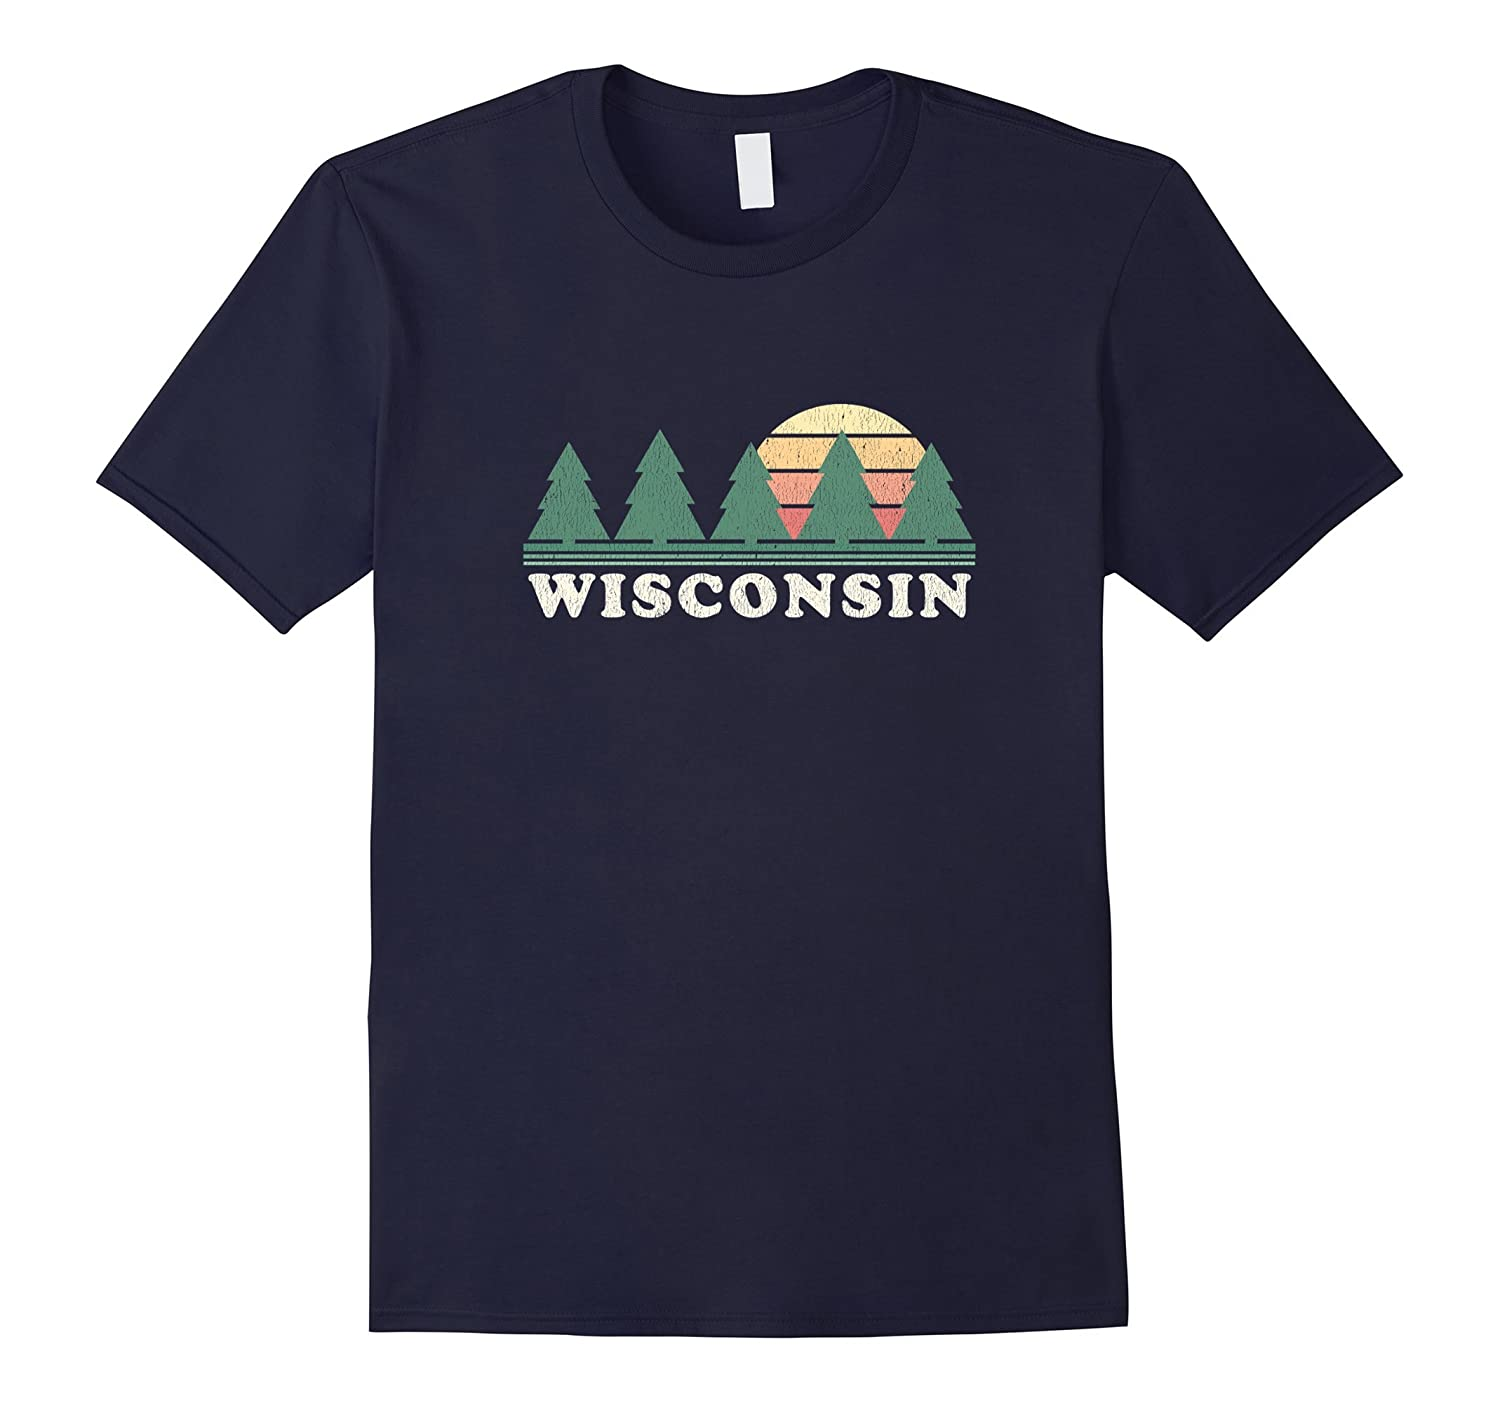 Wisconsin WI T-Shirt Vintage Graphic Tee Retro 70s Design-Rose